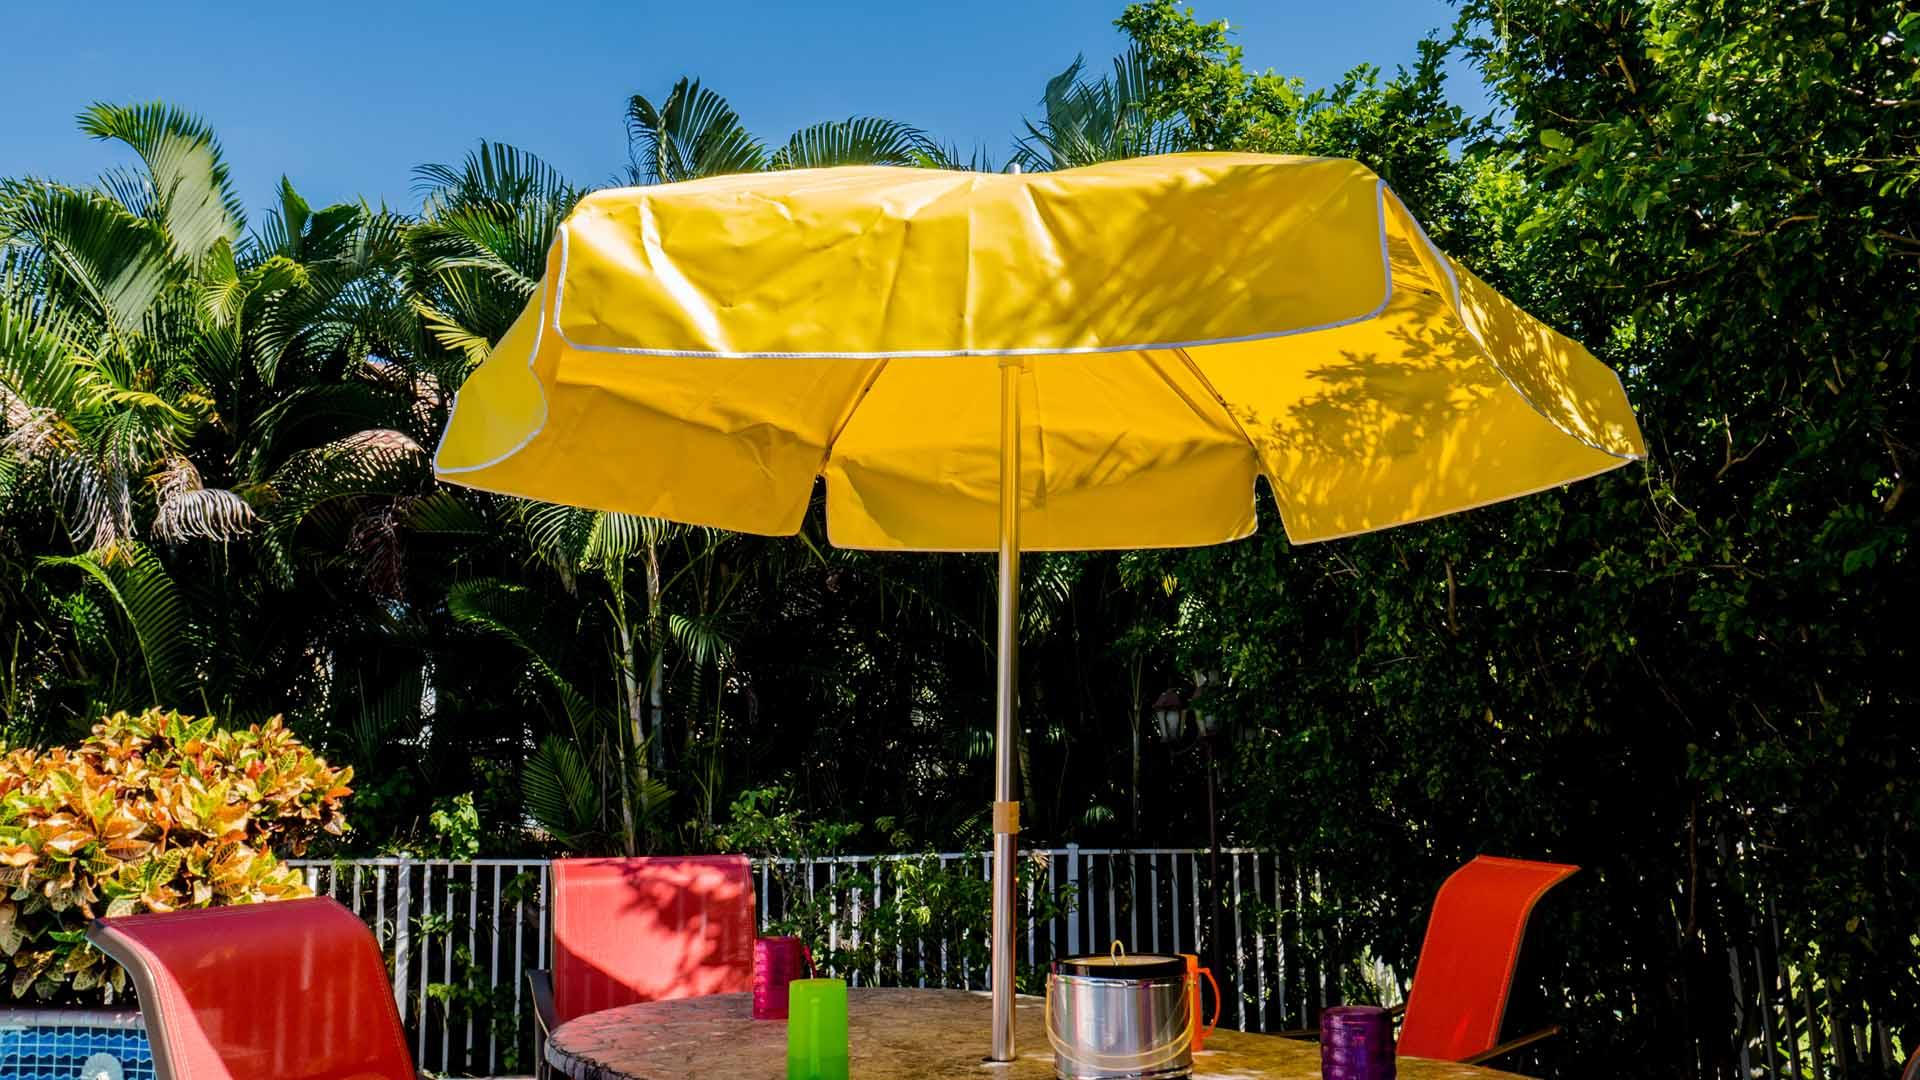 Patio Umbrella 7.50 Ft by 8 Ribs, Crank or Push-up, Steel or Fiberglass Ribs, Canvas, Aluminum Pole (1 or 2 Piece Pole)